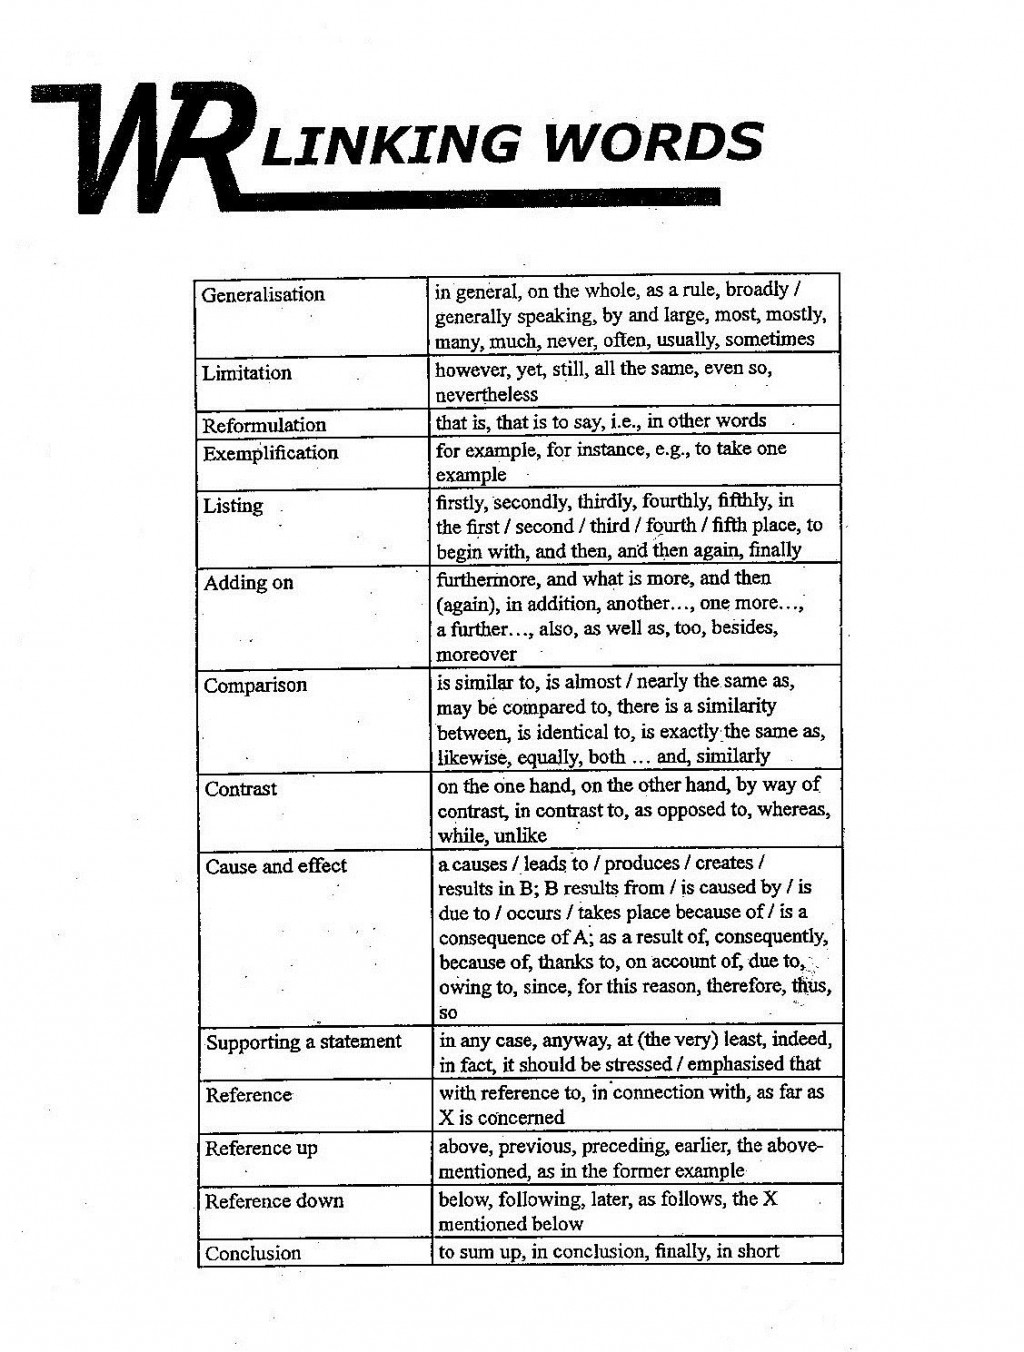 003 Essay Example Connecting Words For Essays Greed French Paragraph On To Start Conclusion In An Stmlk Begin Persuasive The First Body Argumentative Off Sentence Incredible Academic Ielts Large